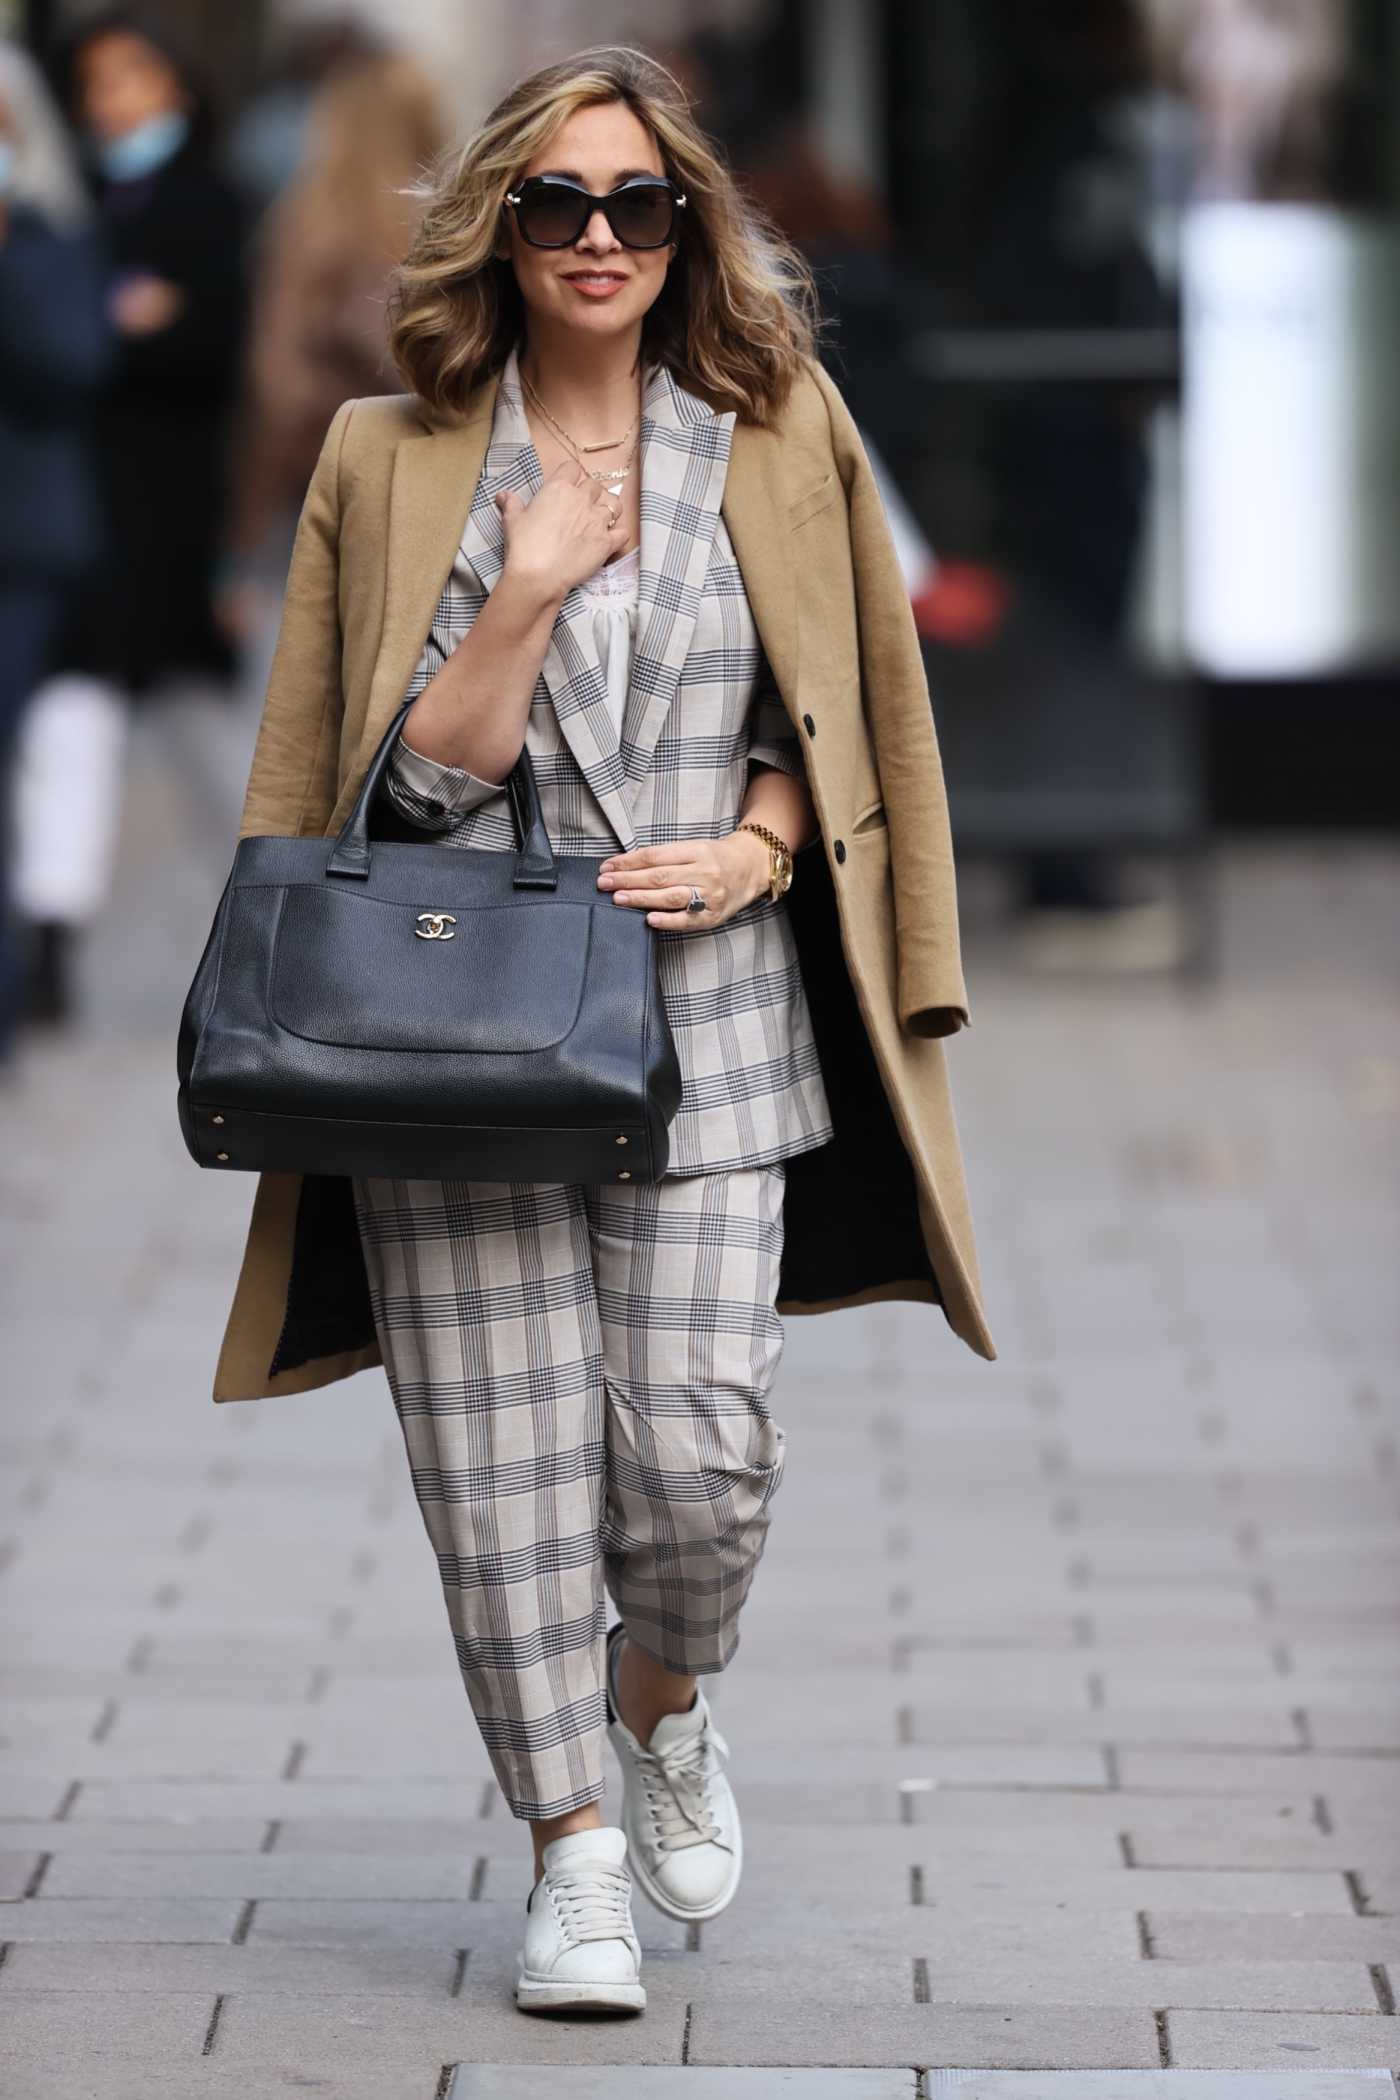 Myleene Klass in a Gingham Suit Arrives at the Smooth Radio in London 10/07/2020